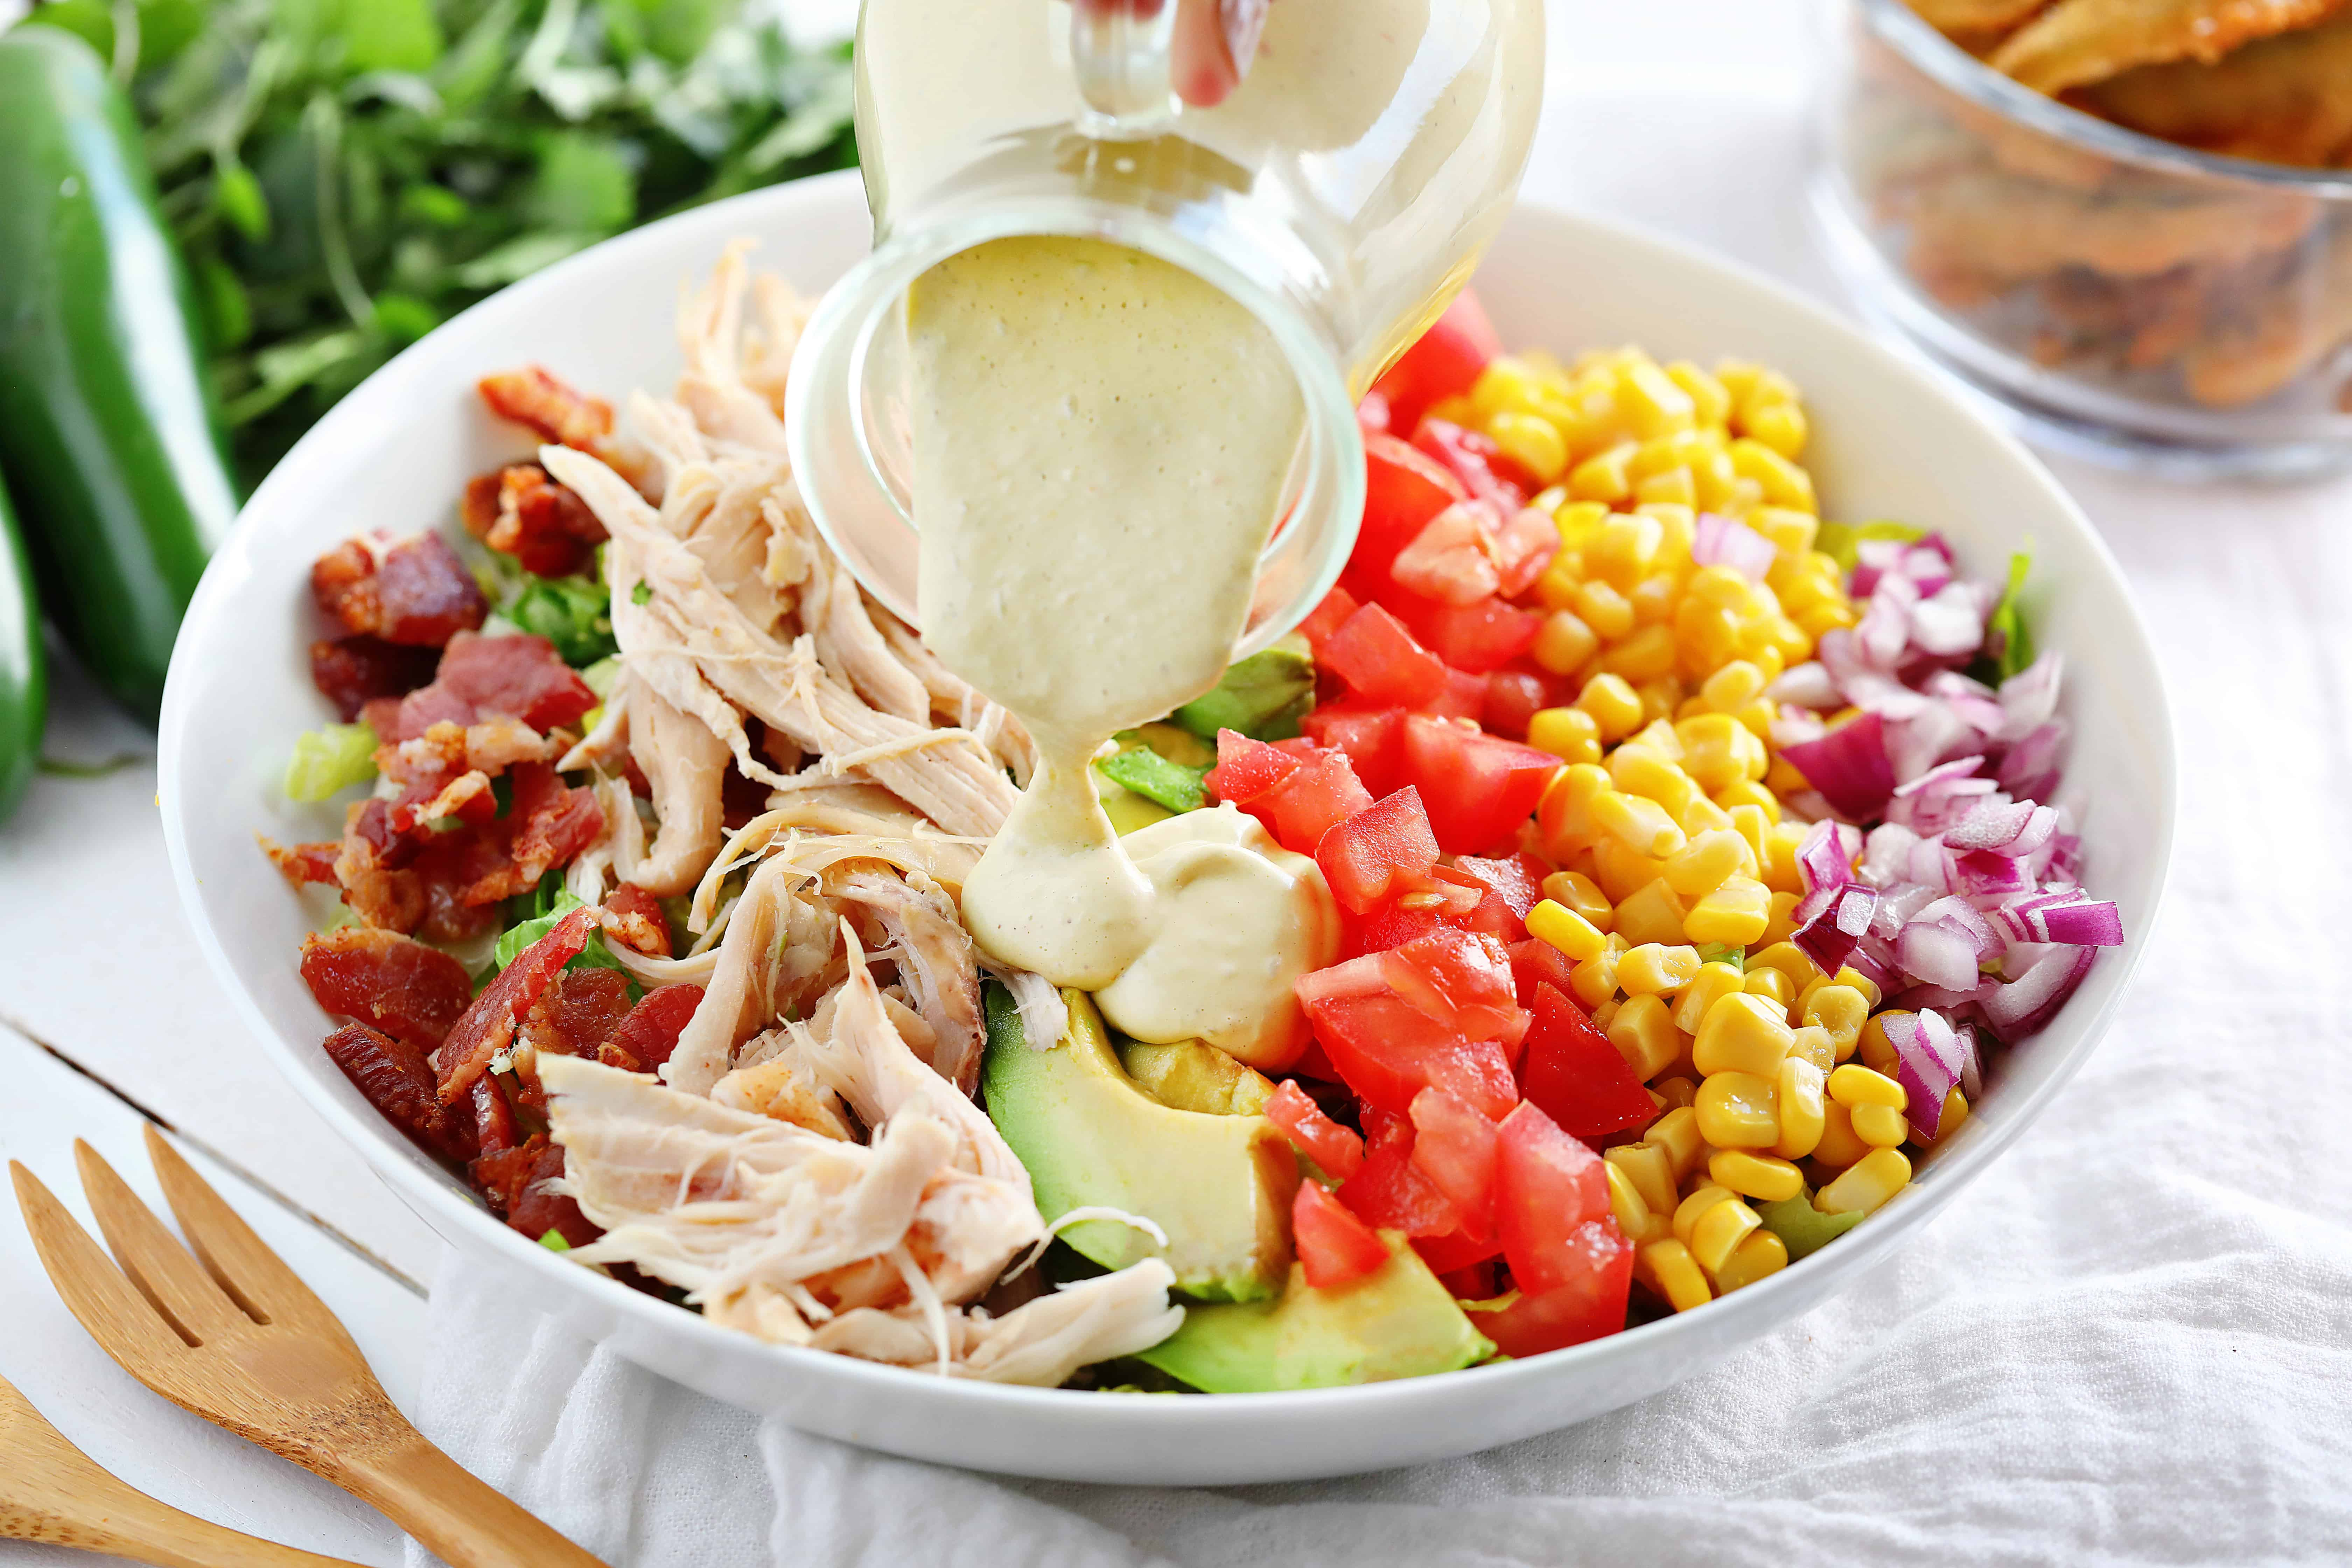 Chicken Salad with Jalapeno Dressing